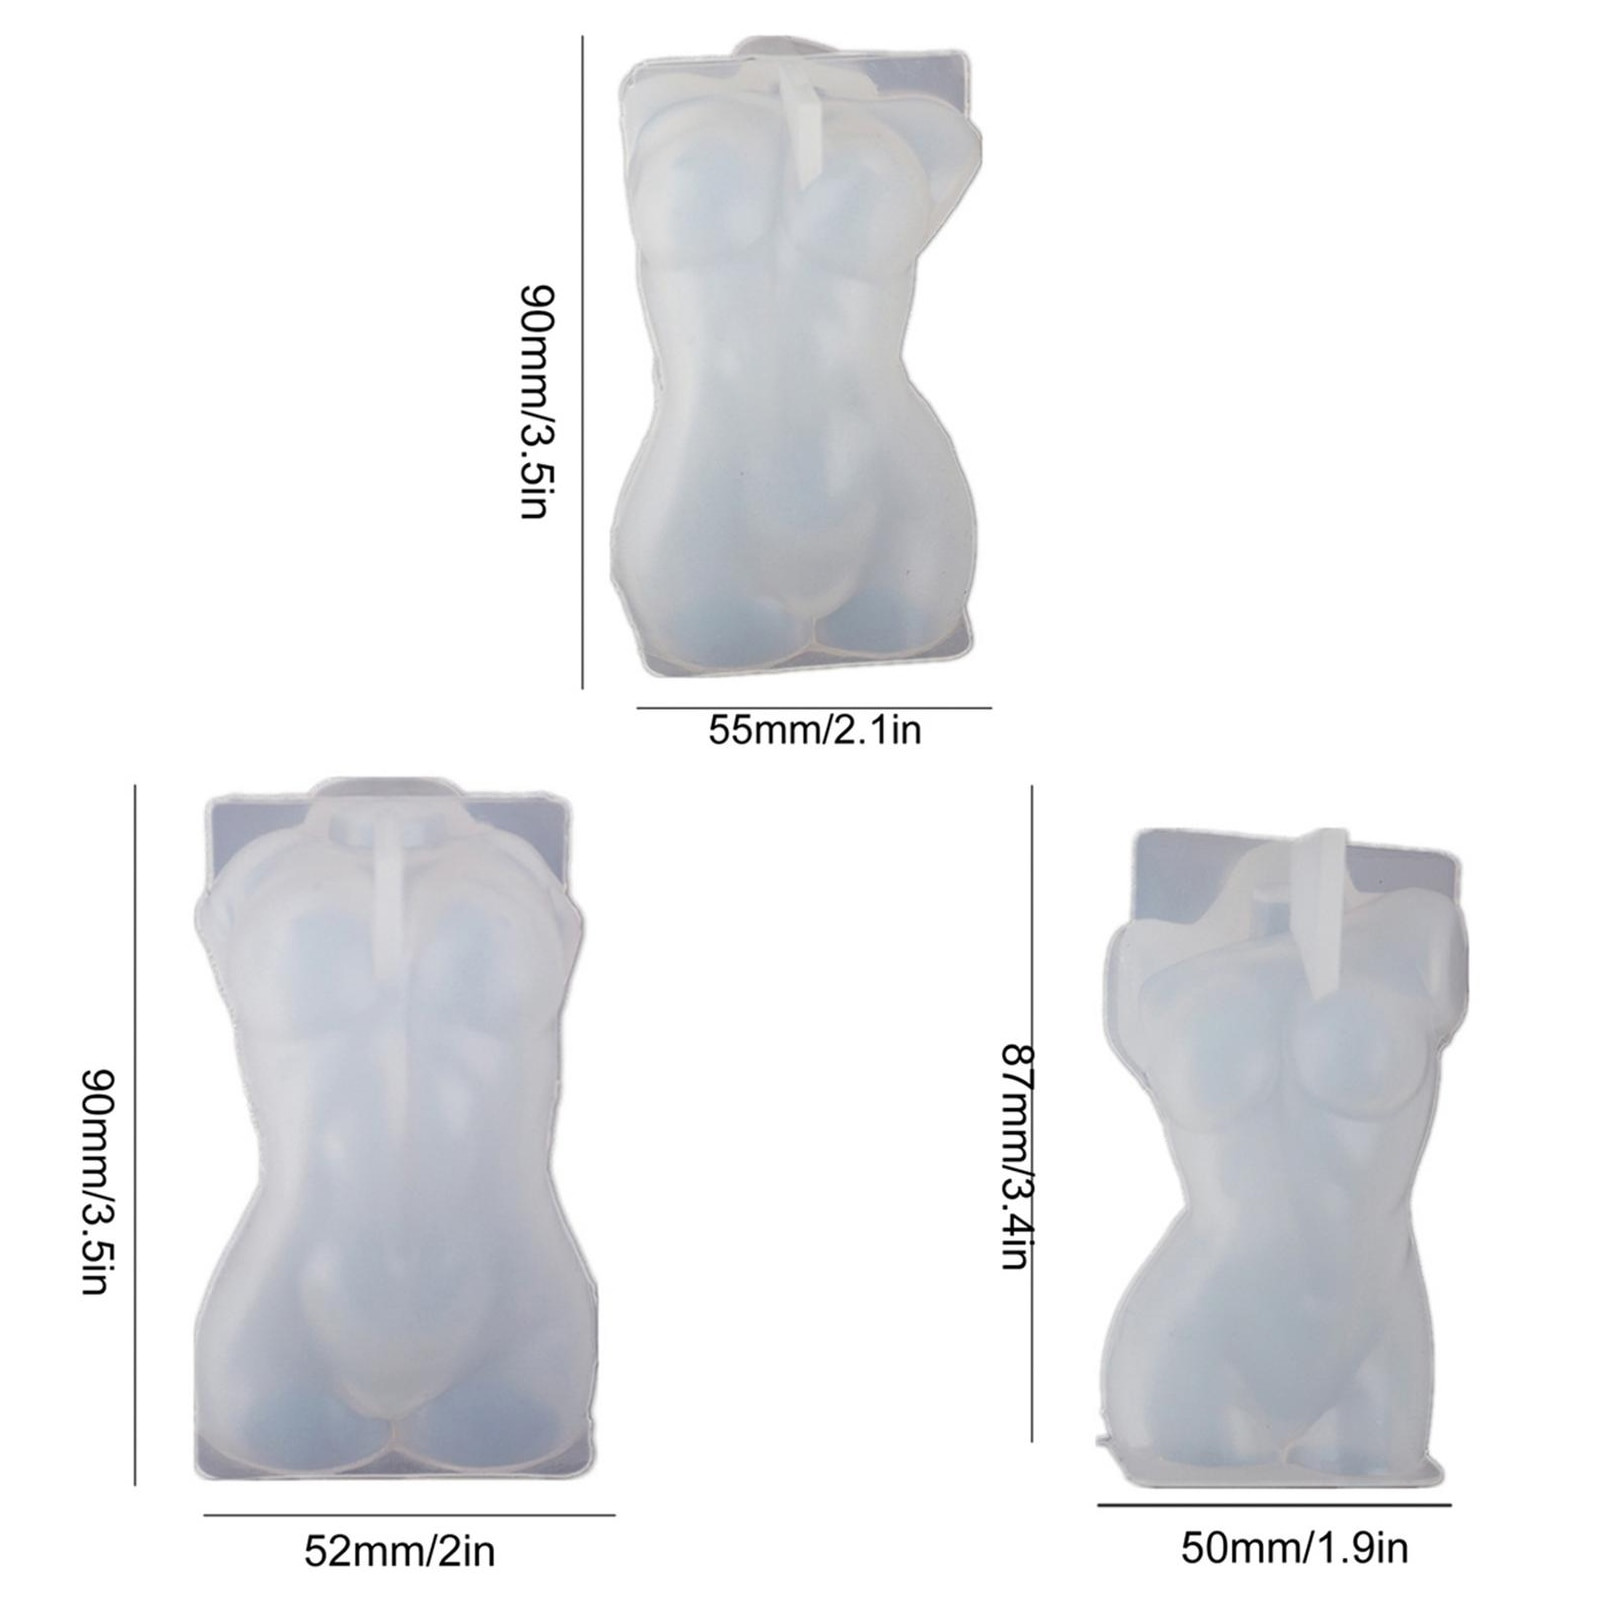 Silicone Mold Woman Body Soap Molds 3D Human Candle Gypsum Chocolate Candle Valentine's Day Cake Mold Clay Resin Moulds Dropship  - buy with discount